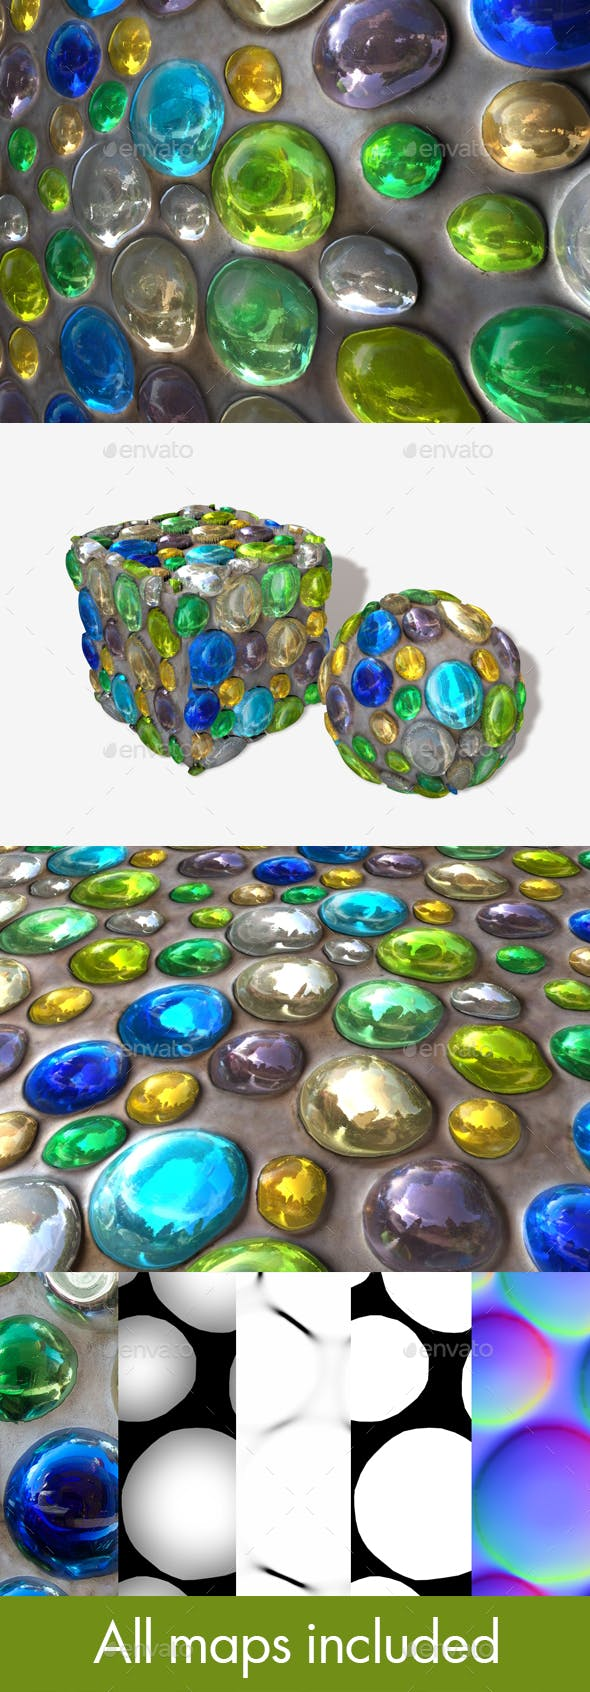 Shiny Ball Decorated Wall Seamless Texture - 3DOcean Item for Sale